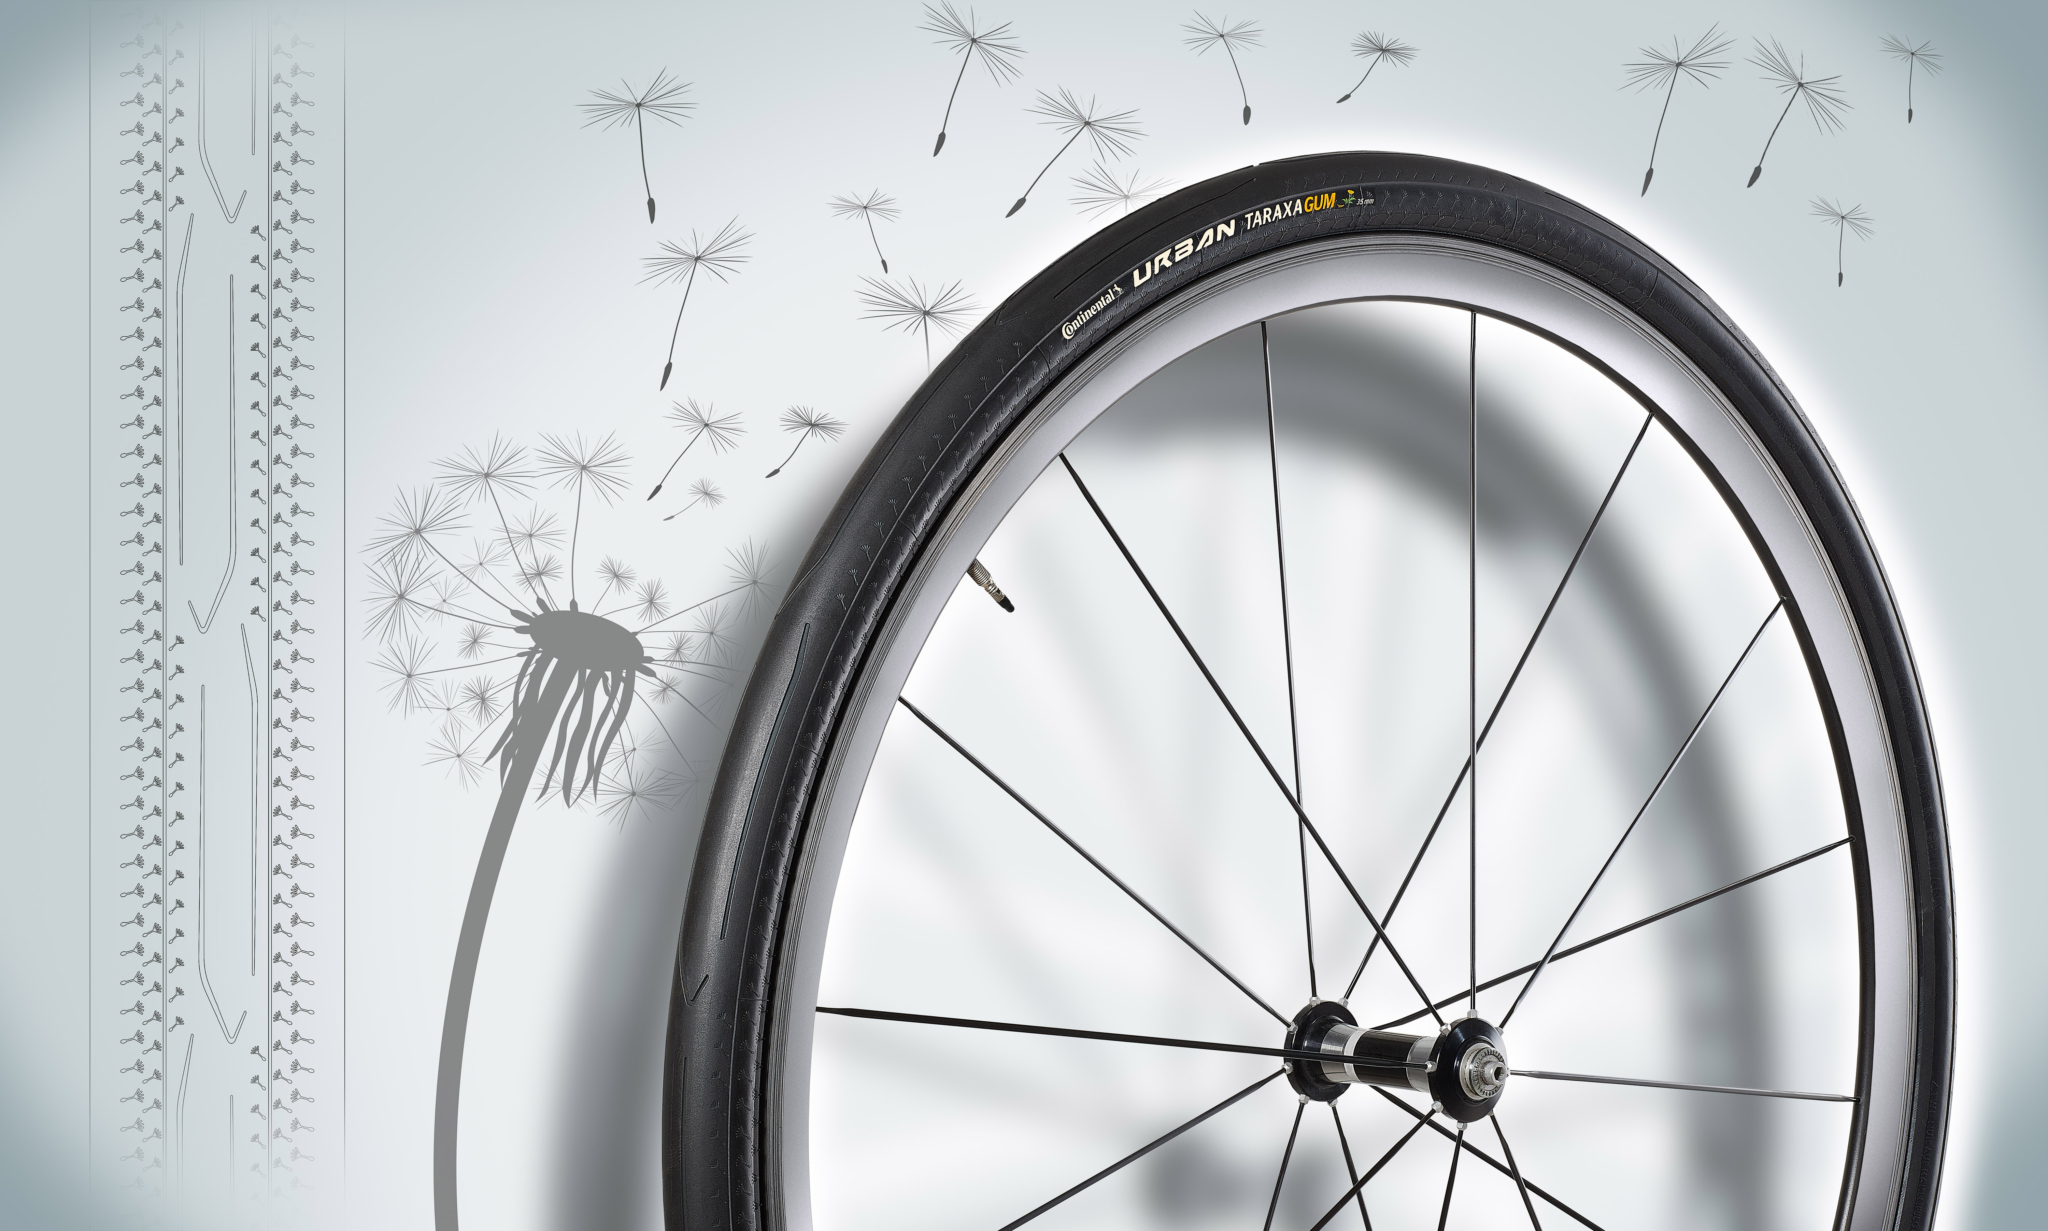 Two awards for Continental dandelion rubber bicycle tyres